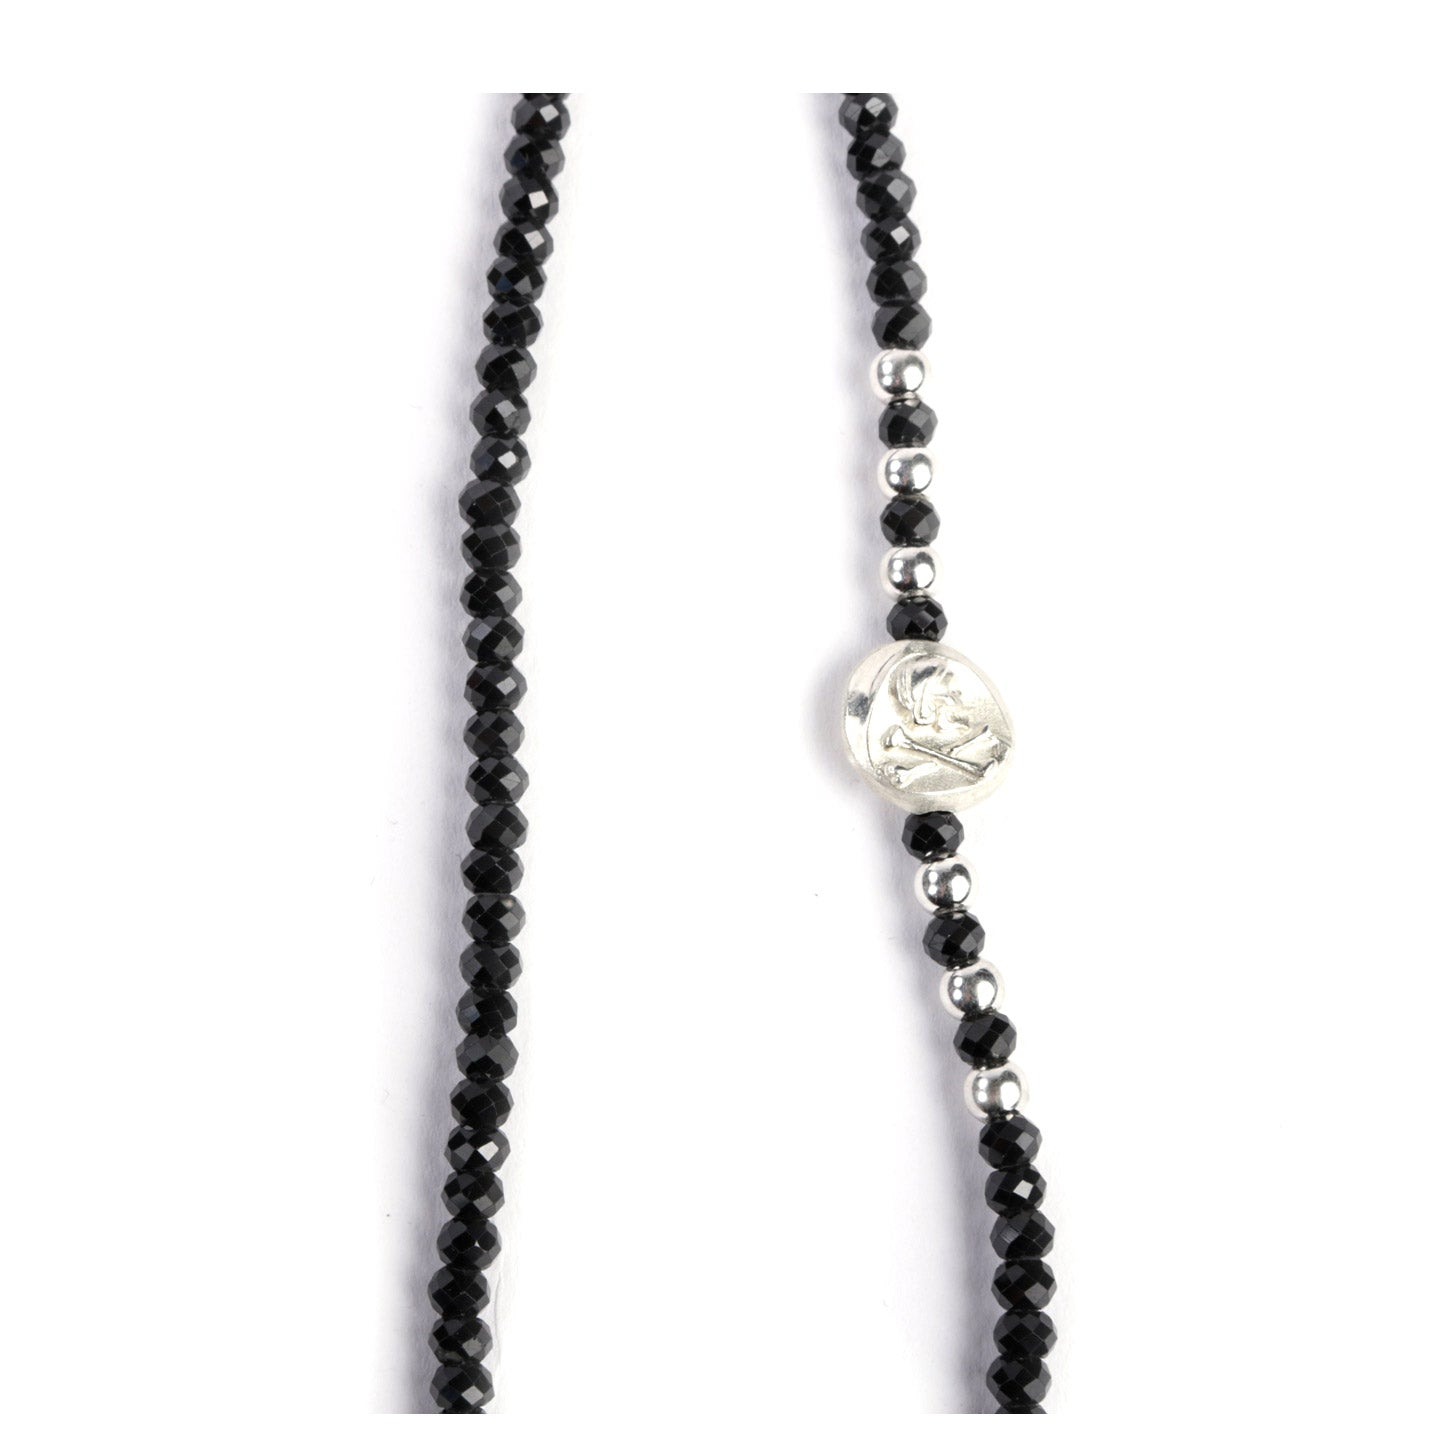 NEIGHBORHOOD X CORE JEWELS BLACK SPINEL NECKLACE SILVER